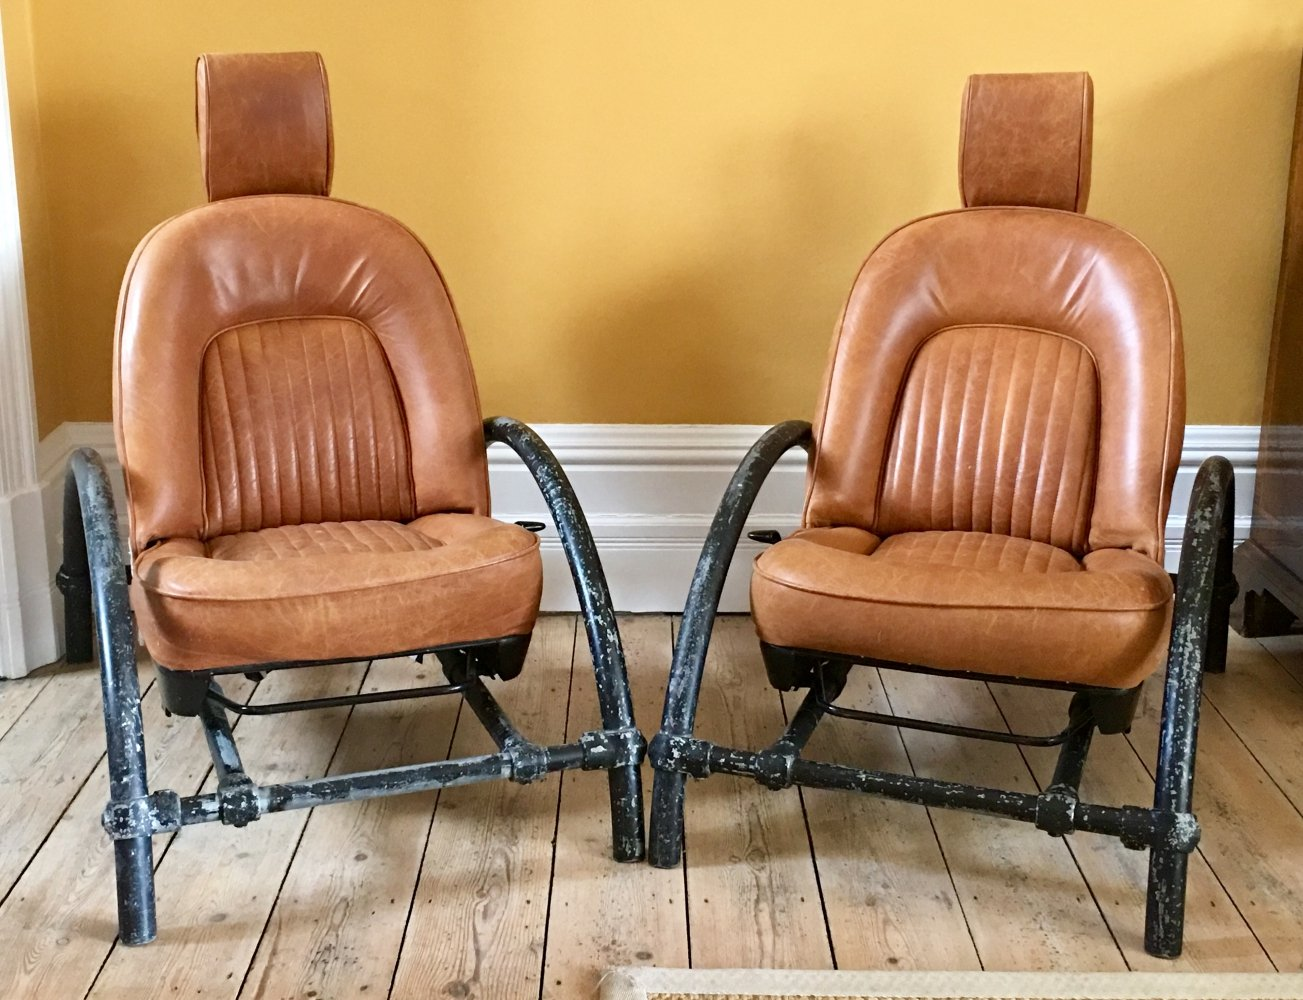 Pair of Ron Arad Rover chairs in tan leather & Kee Klamp frame